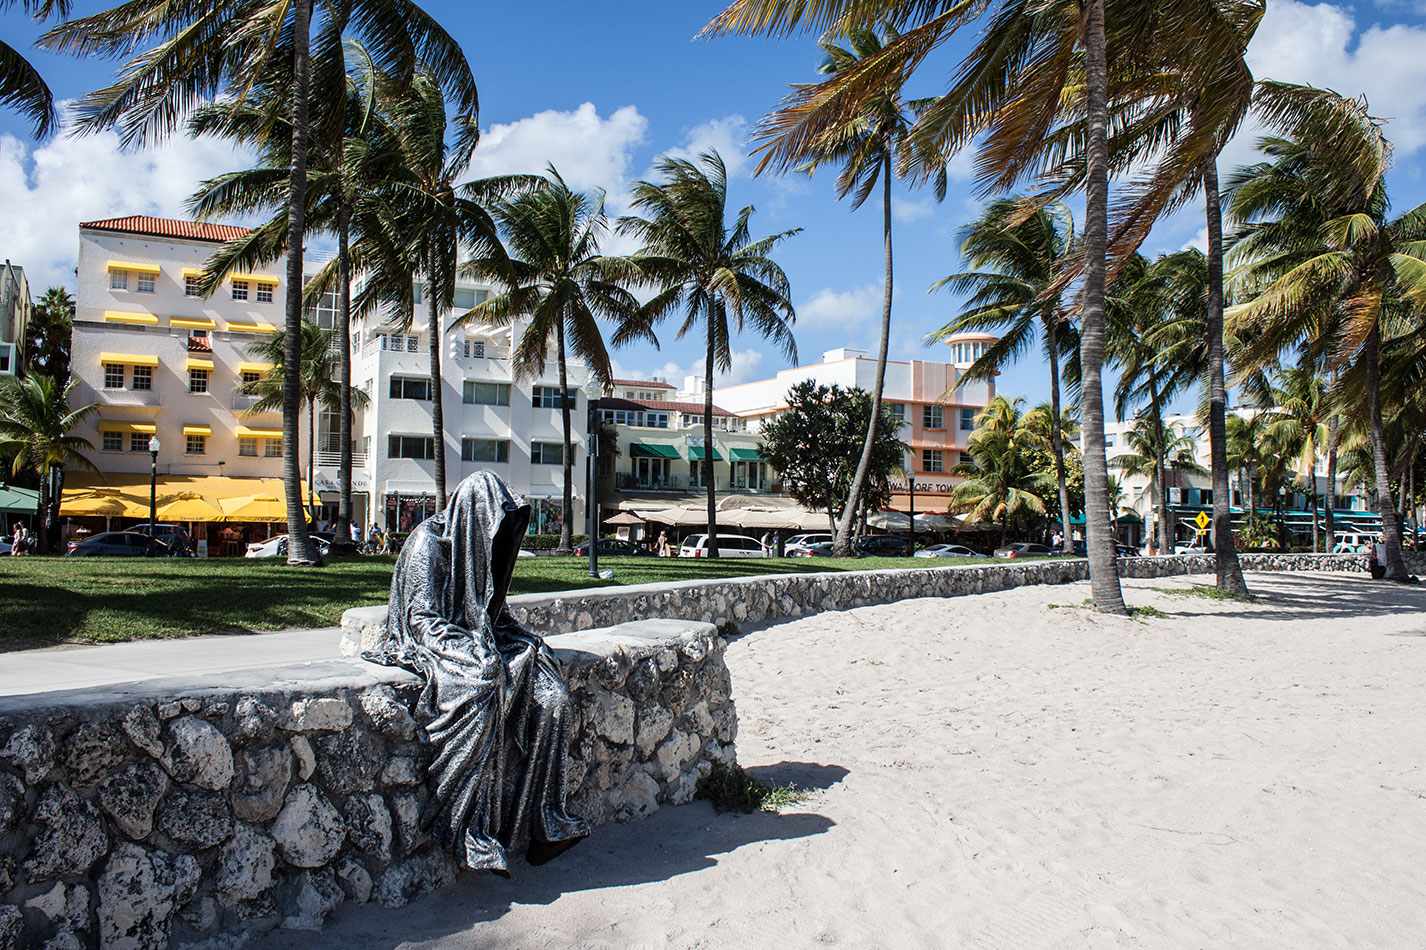 public-art-basel-miami-beach-fair-usa-florida-bass-museum-guardians-of-time-manfred-kili-kielnhofer-contemporary-fine-art-modern-arts-design-antiques-sculpture-6550